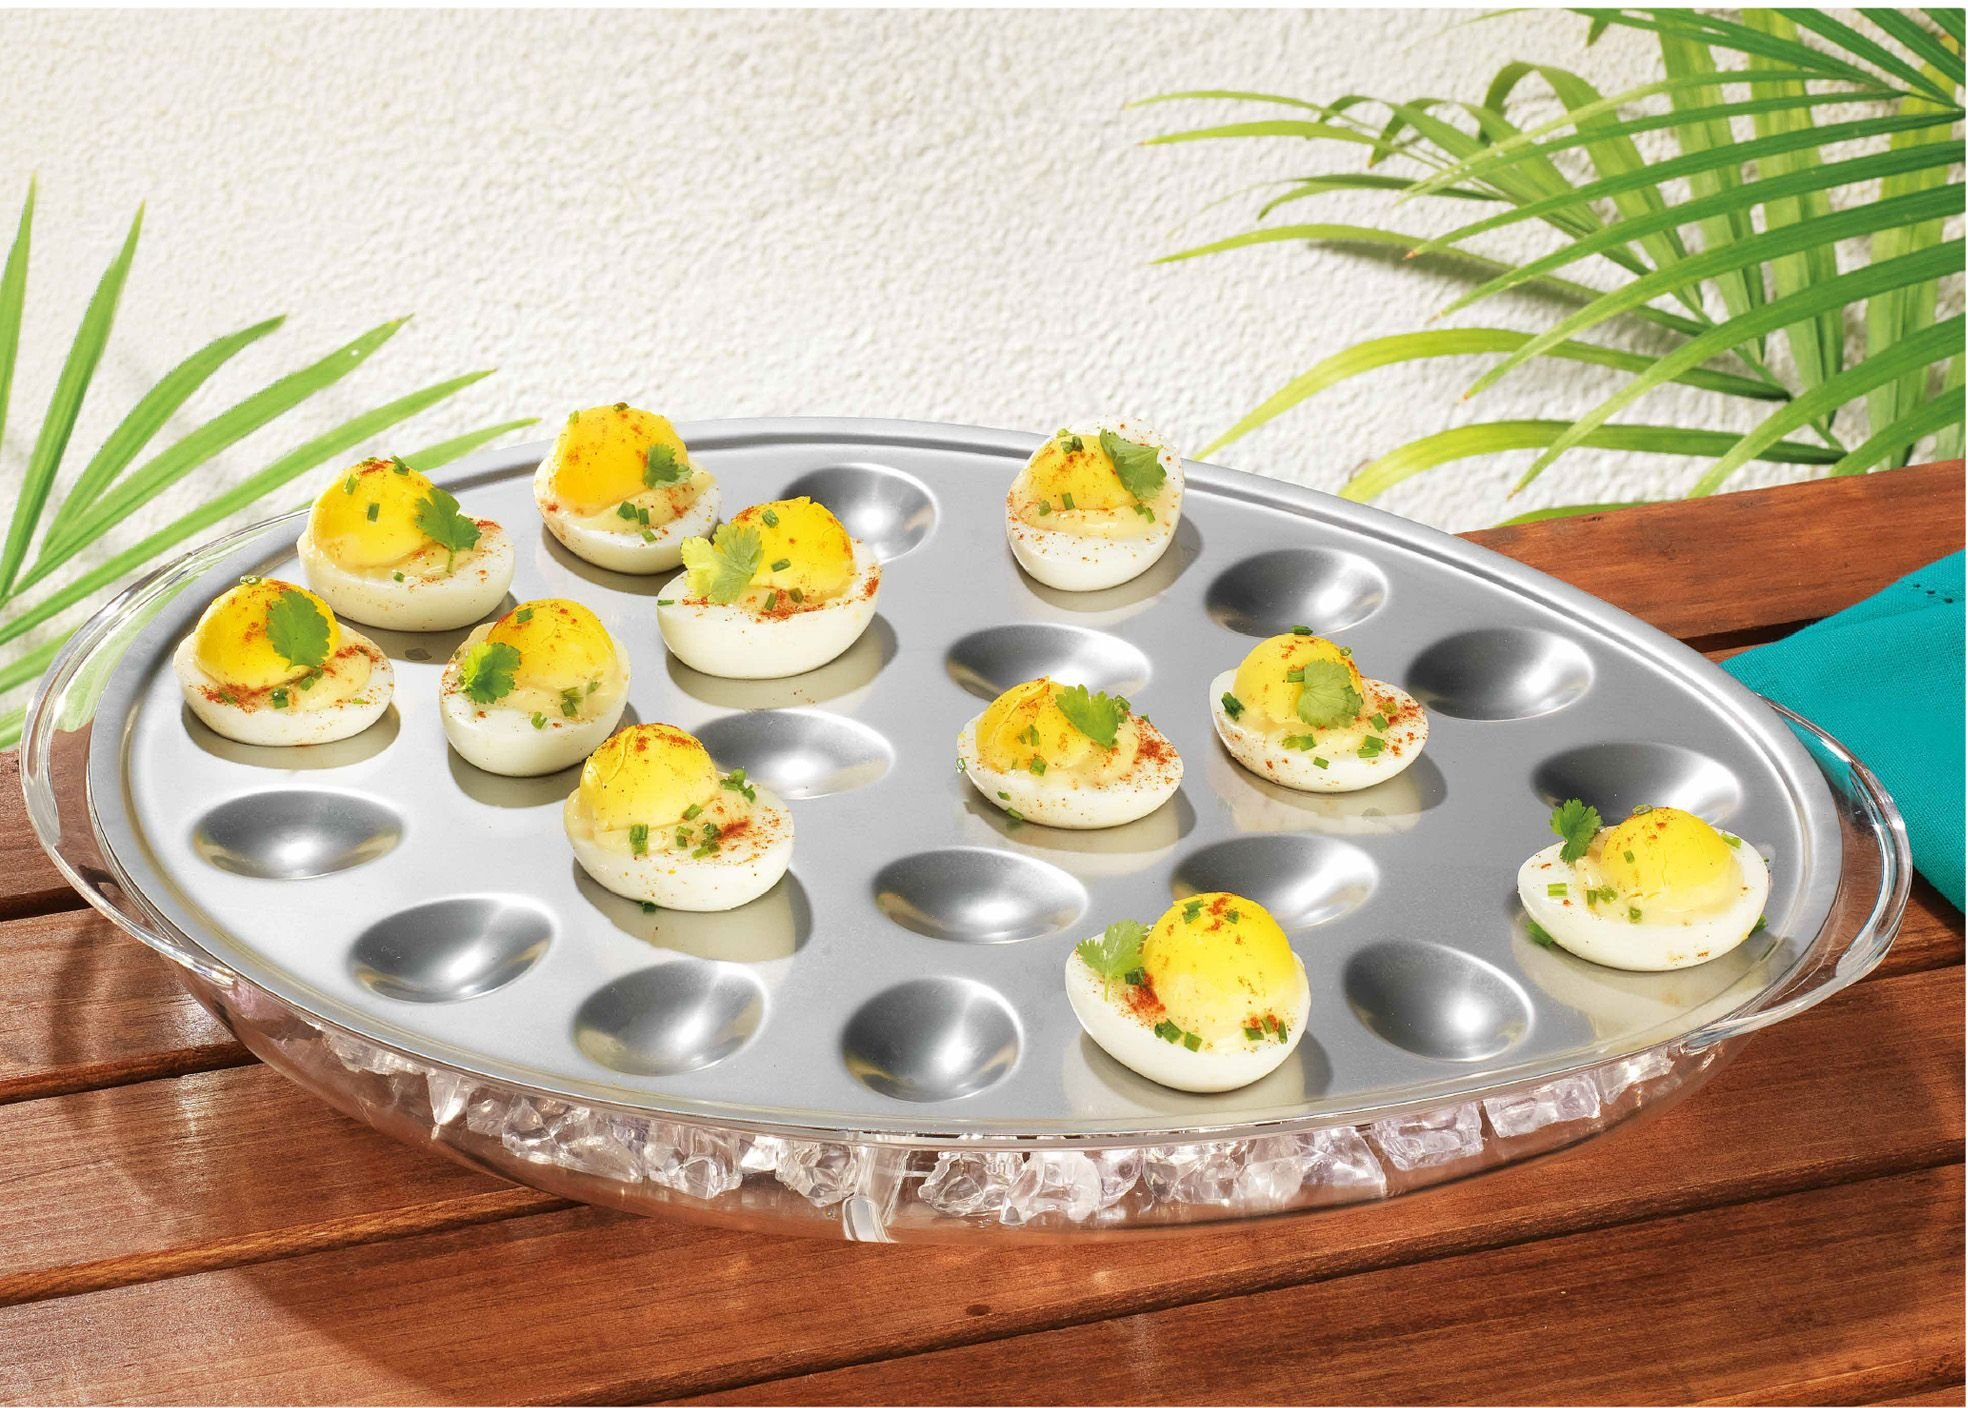 Elegant Home Stainless Egg Platter with Acrylic ice Chiller by E.H (Image #1)